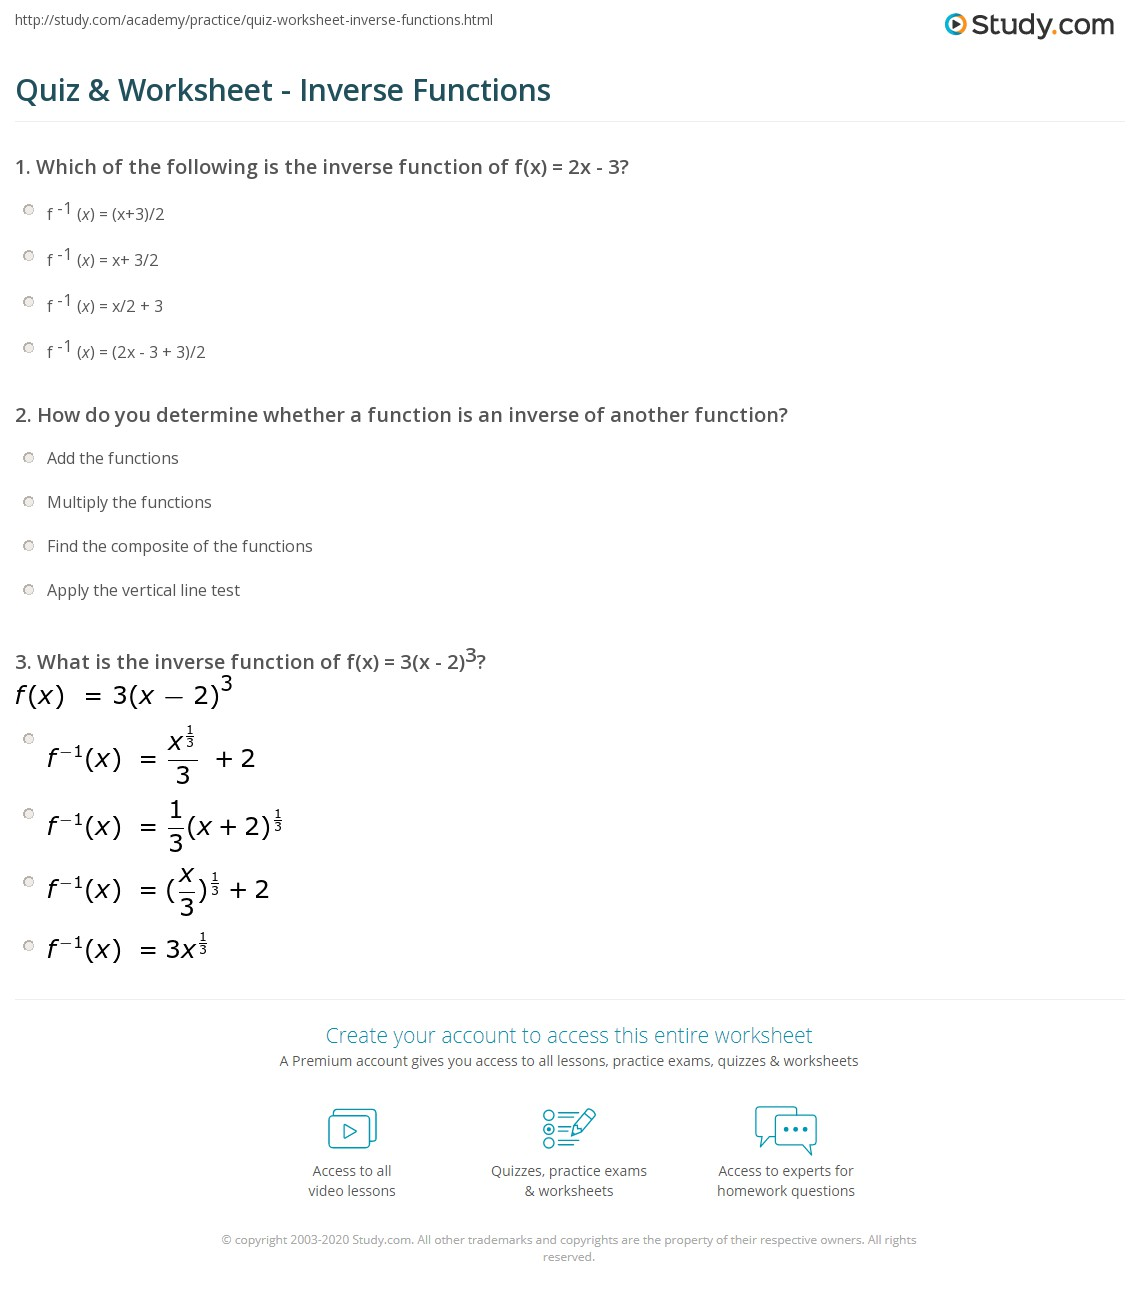 Quiz & Worksheet - Inverse Functions | Study.com